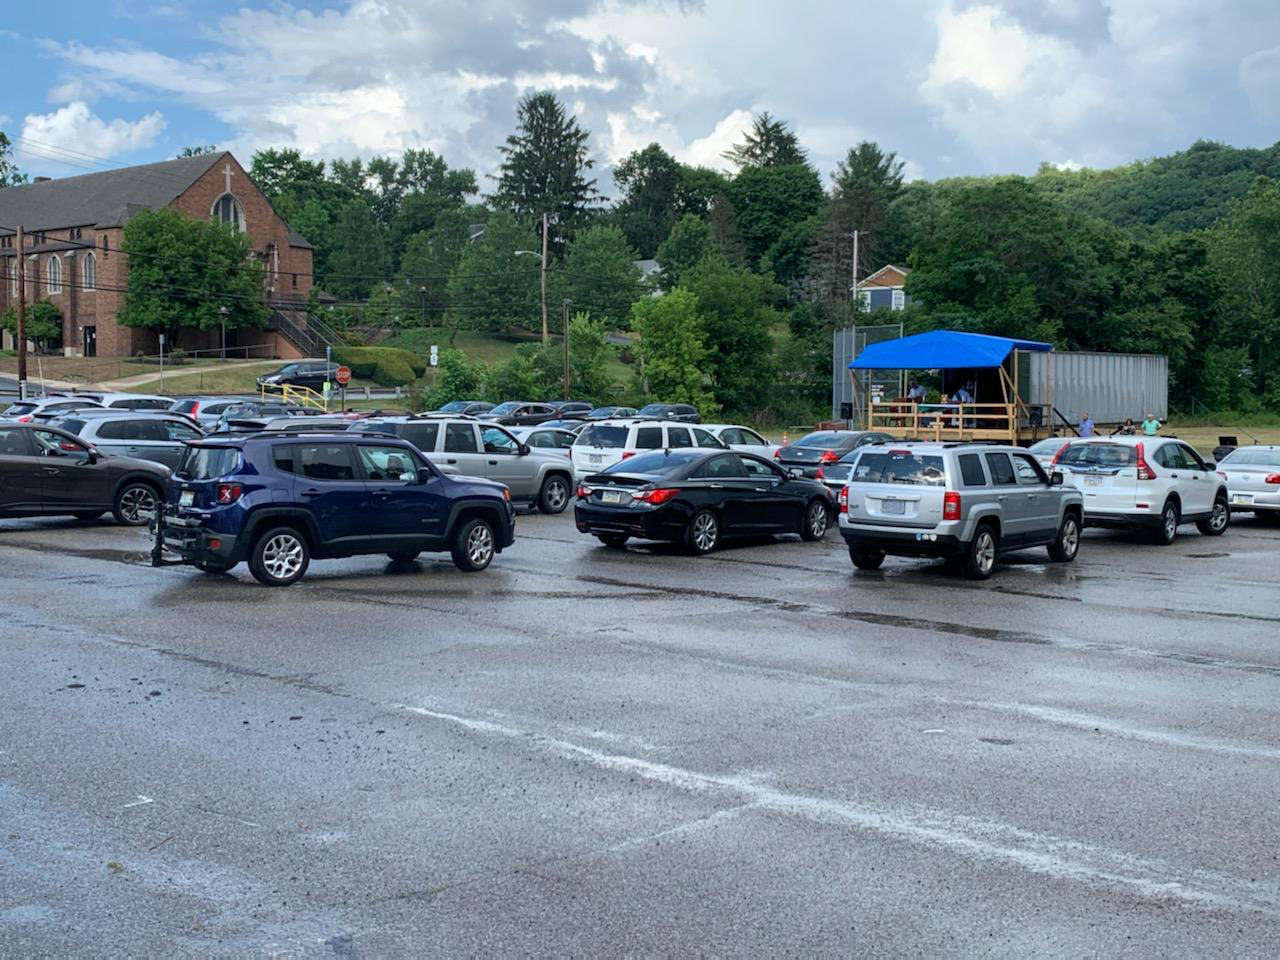 Vehicles gather in the parking lot of St. Ursula Parish as Father Tim Whalen presides over mass from a makeshift platform